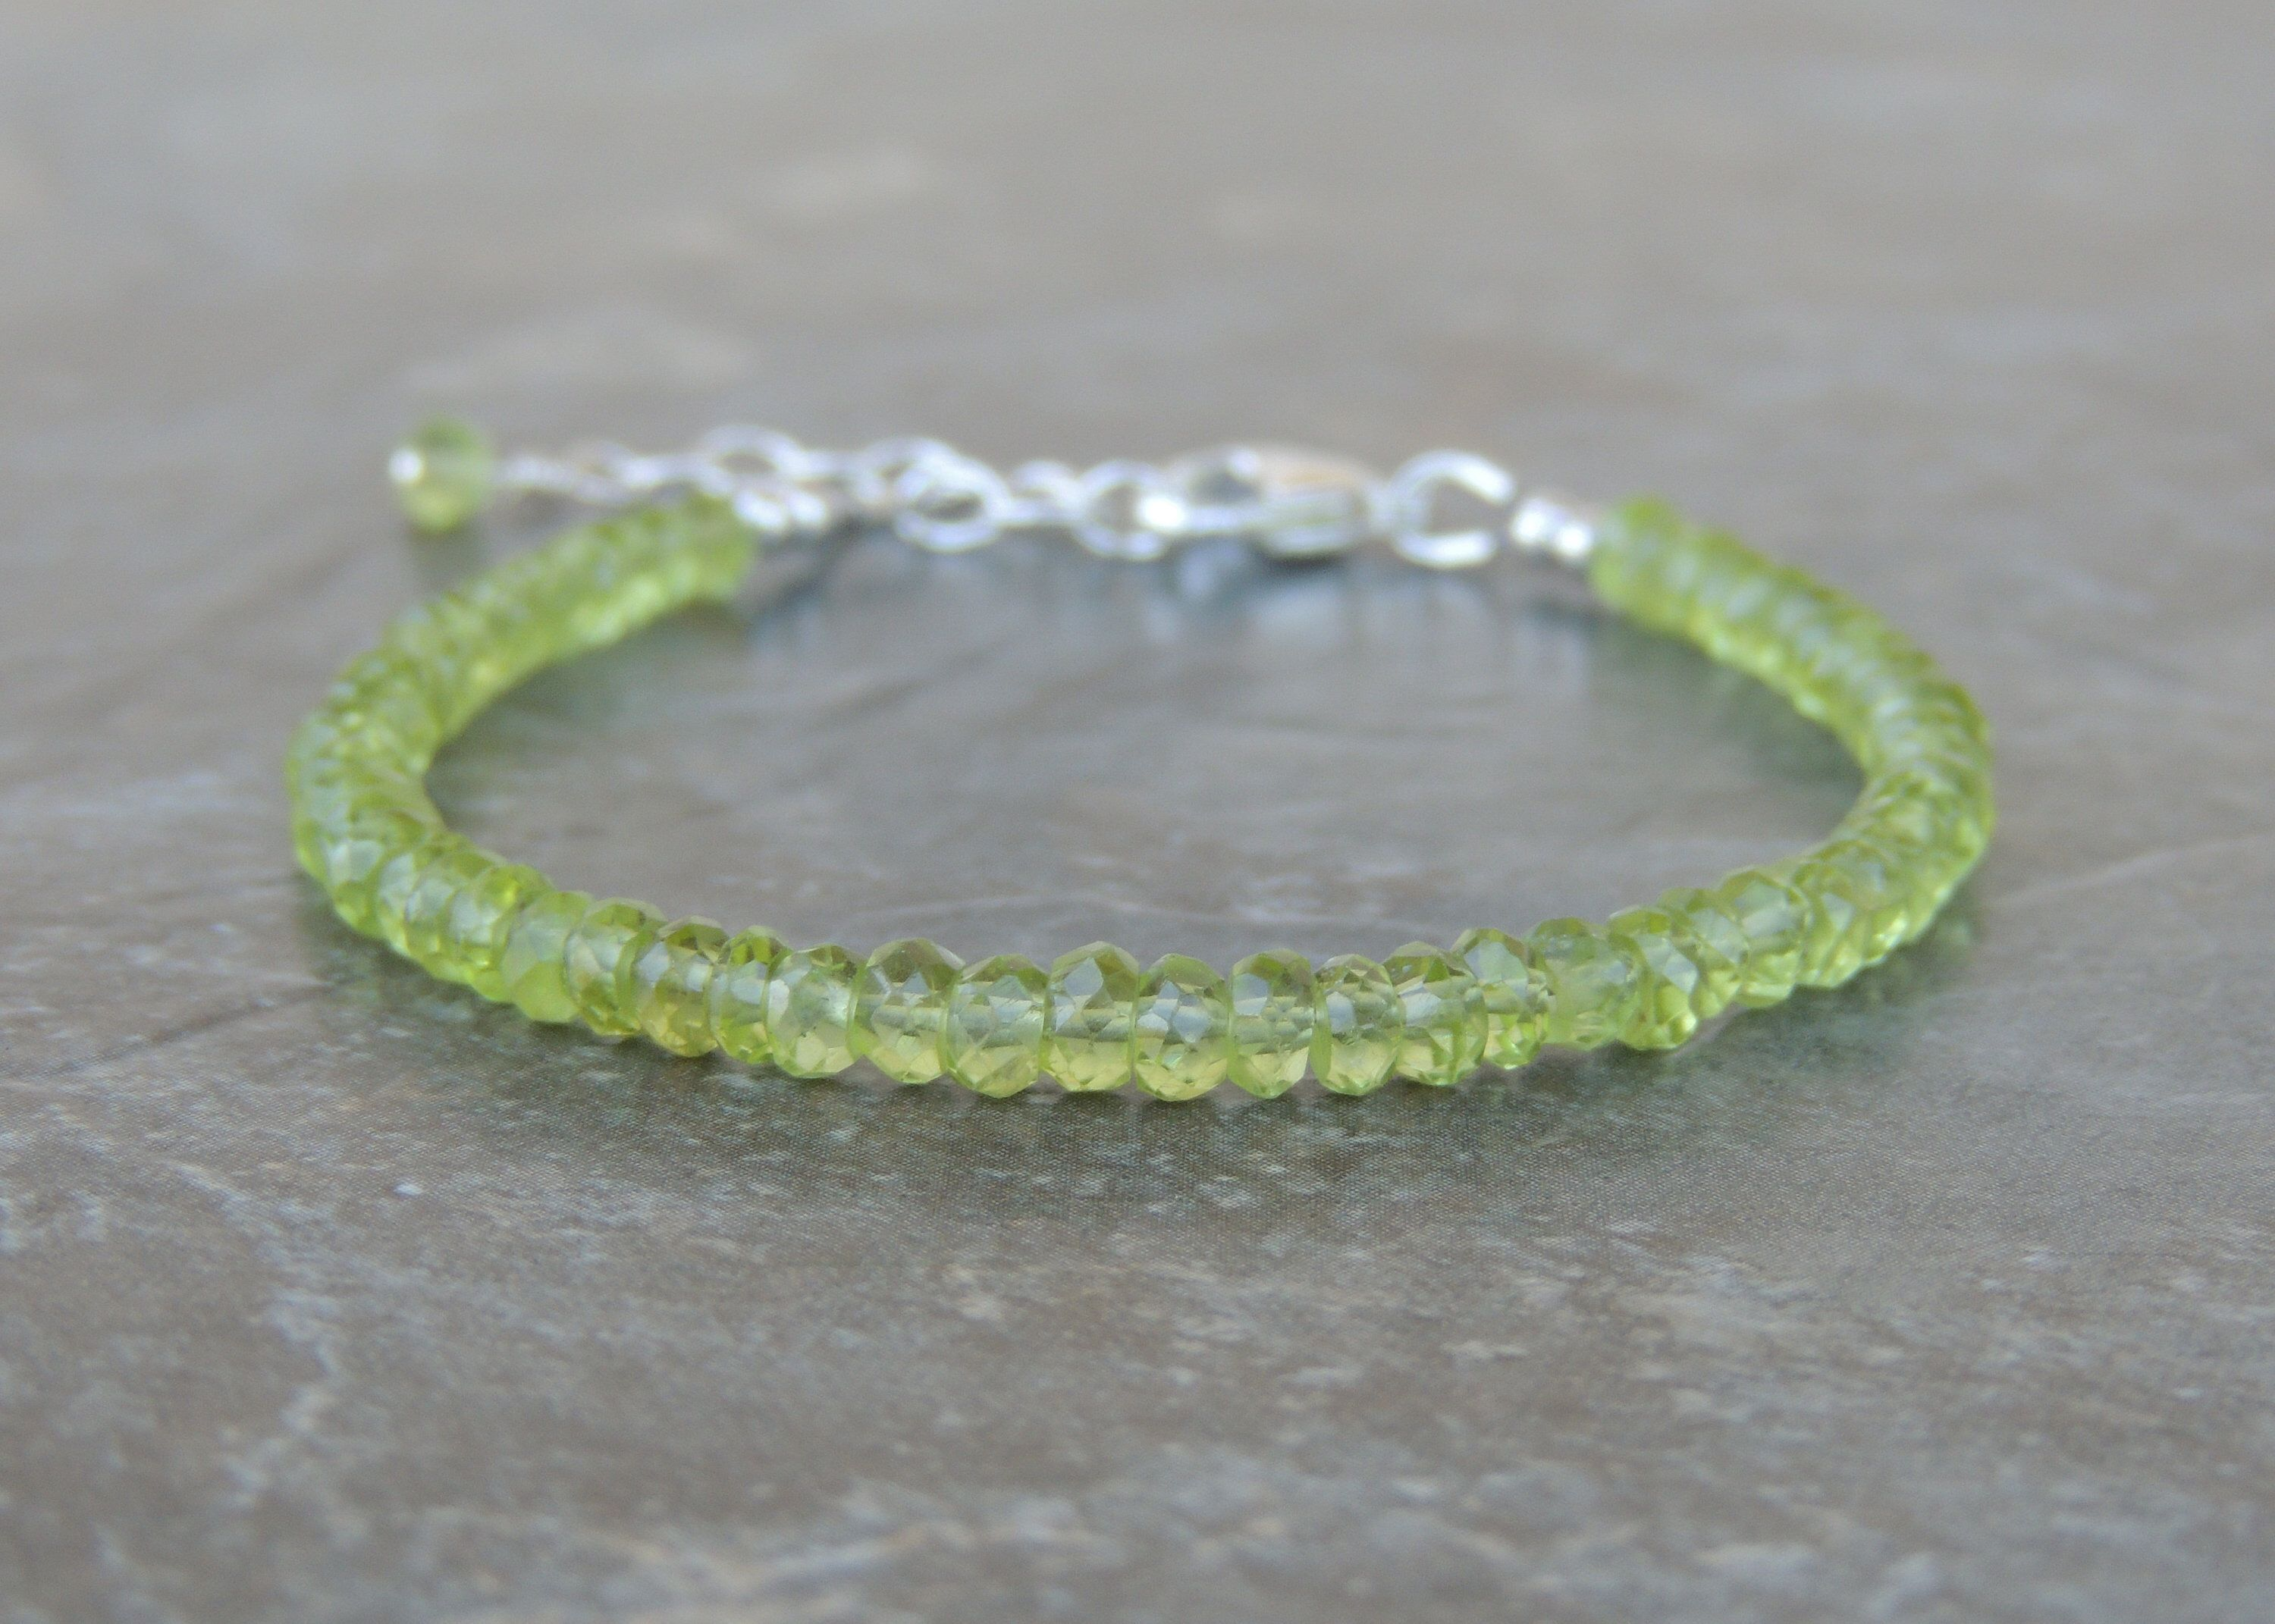 mental awareness charity hodgkin buy green non products mysticmoon lymphoma bracelet lime health